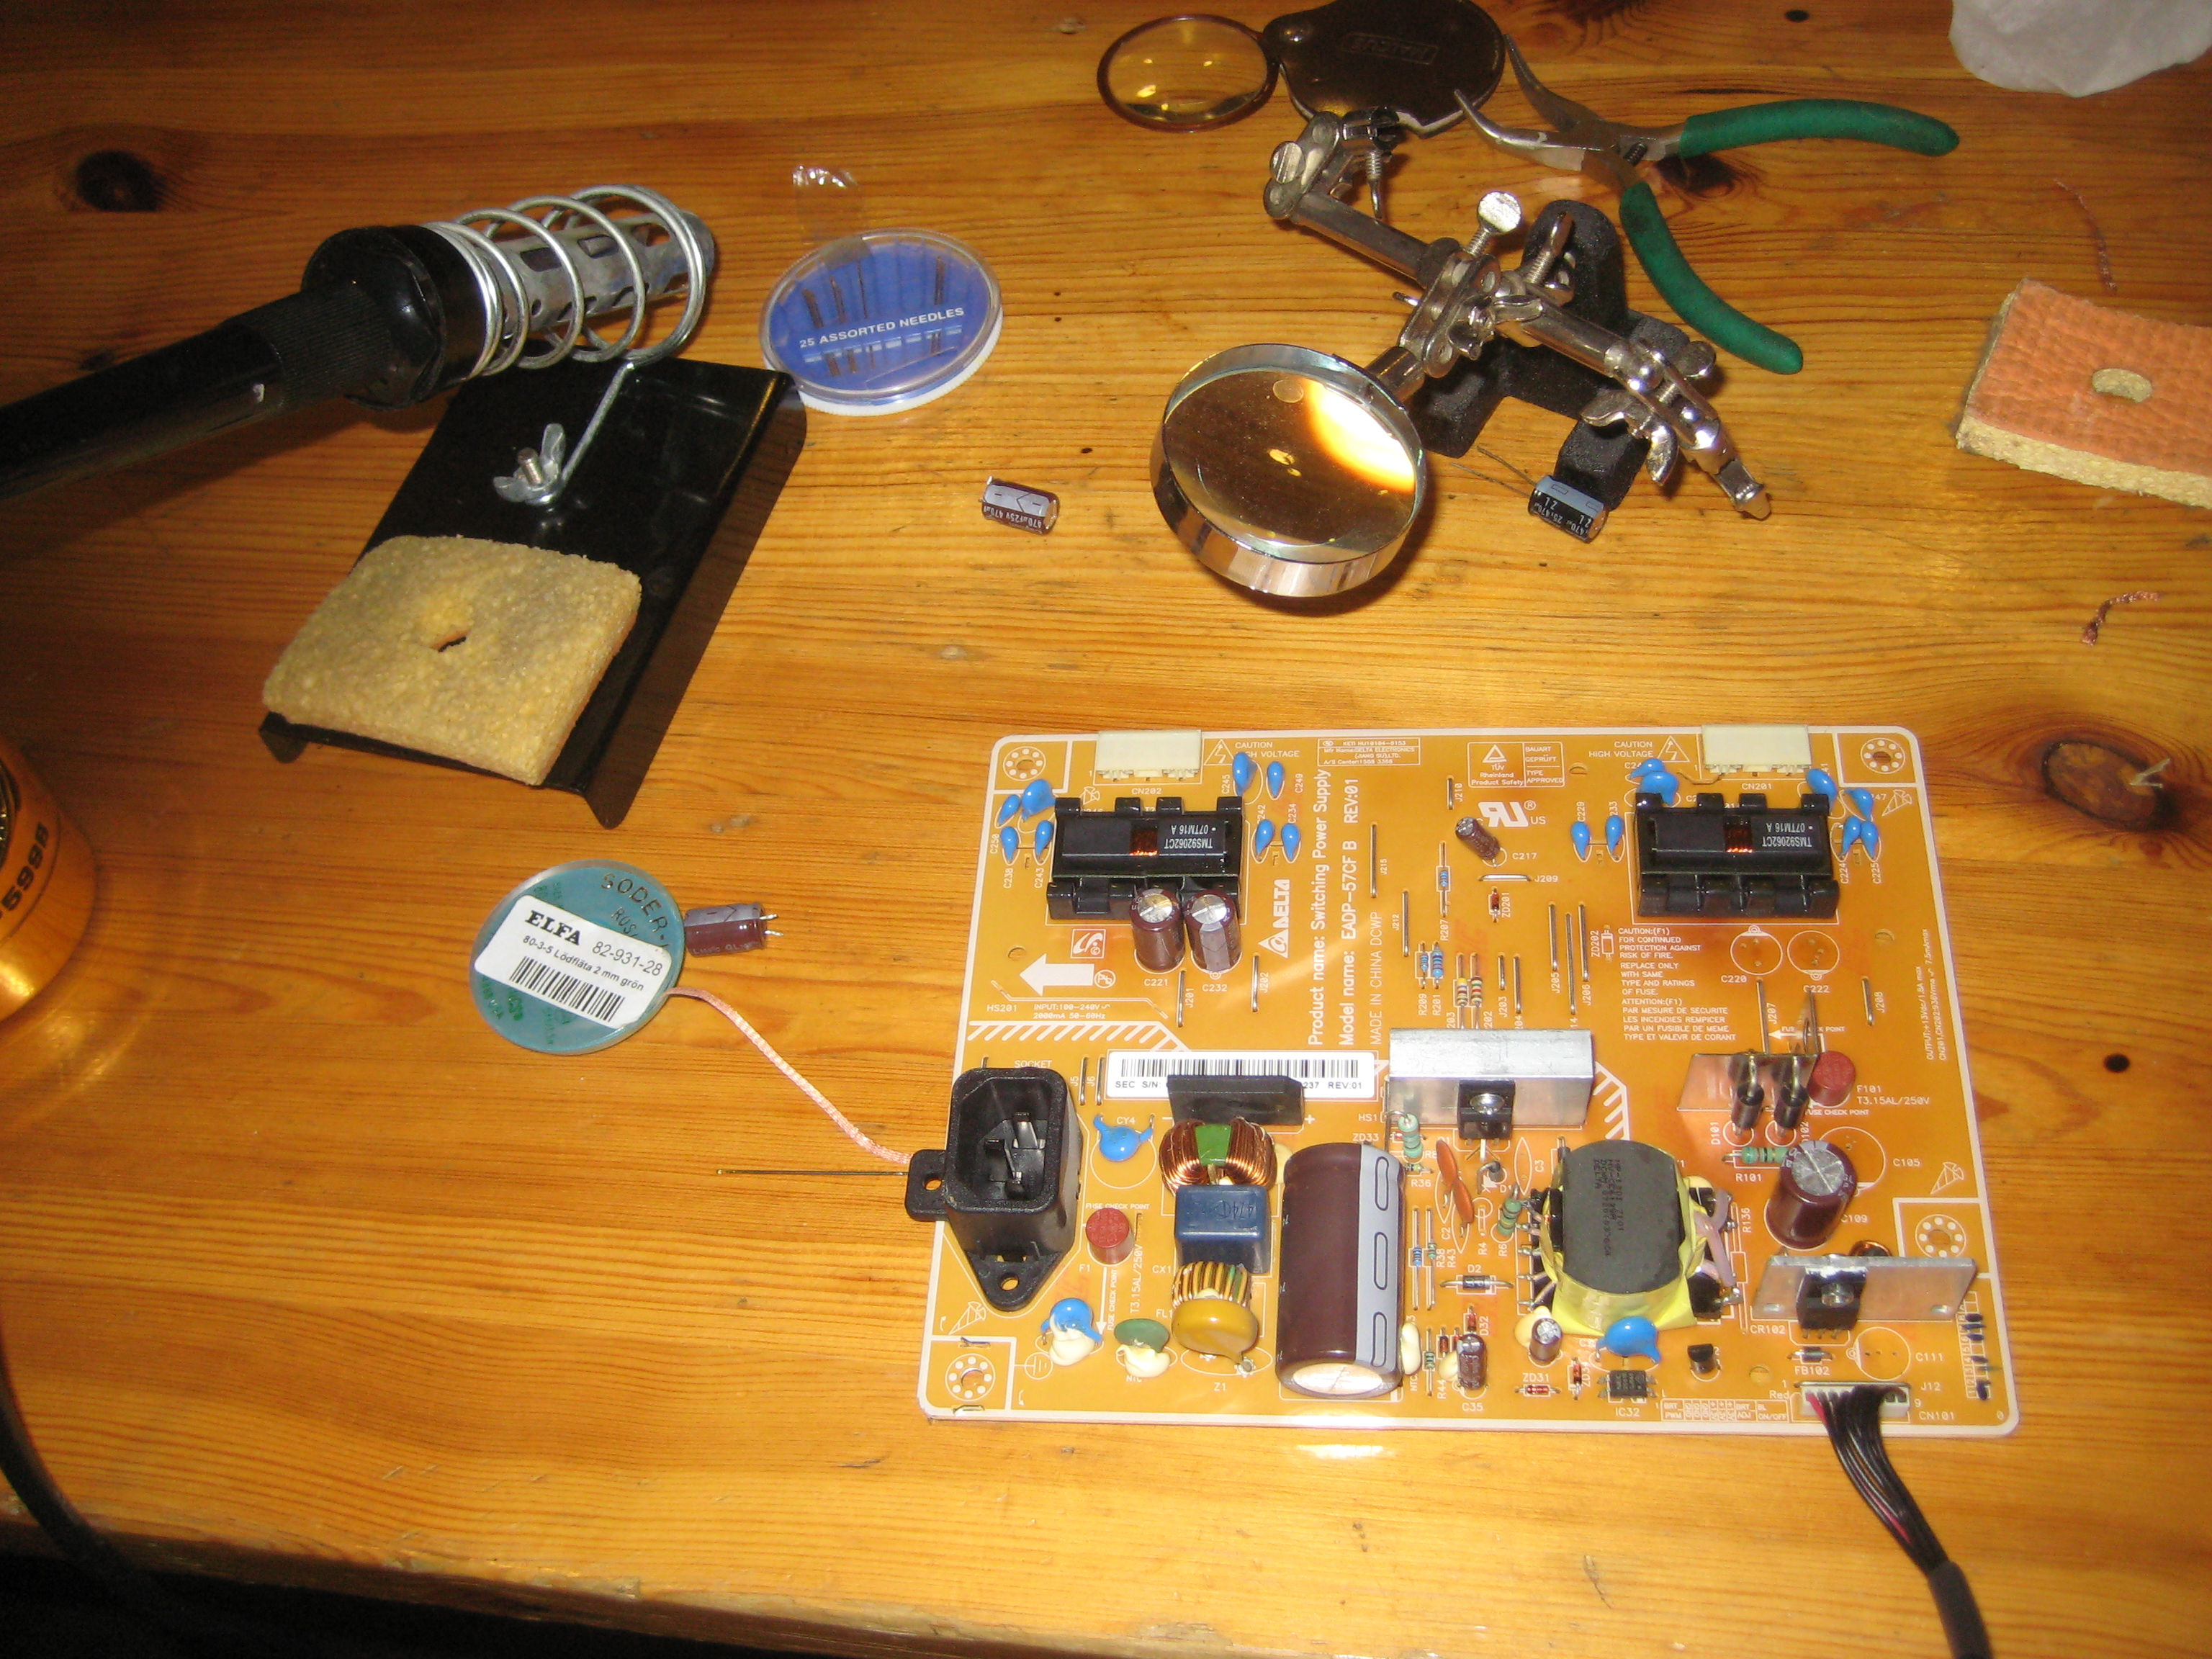 Disassembly And Repair Of Lcd Monitor Specifically Samsung 225mw Capacitors Electronic Snap Circuits Wiki Capacitor Switch